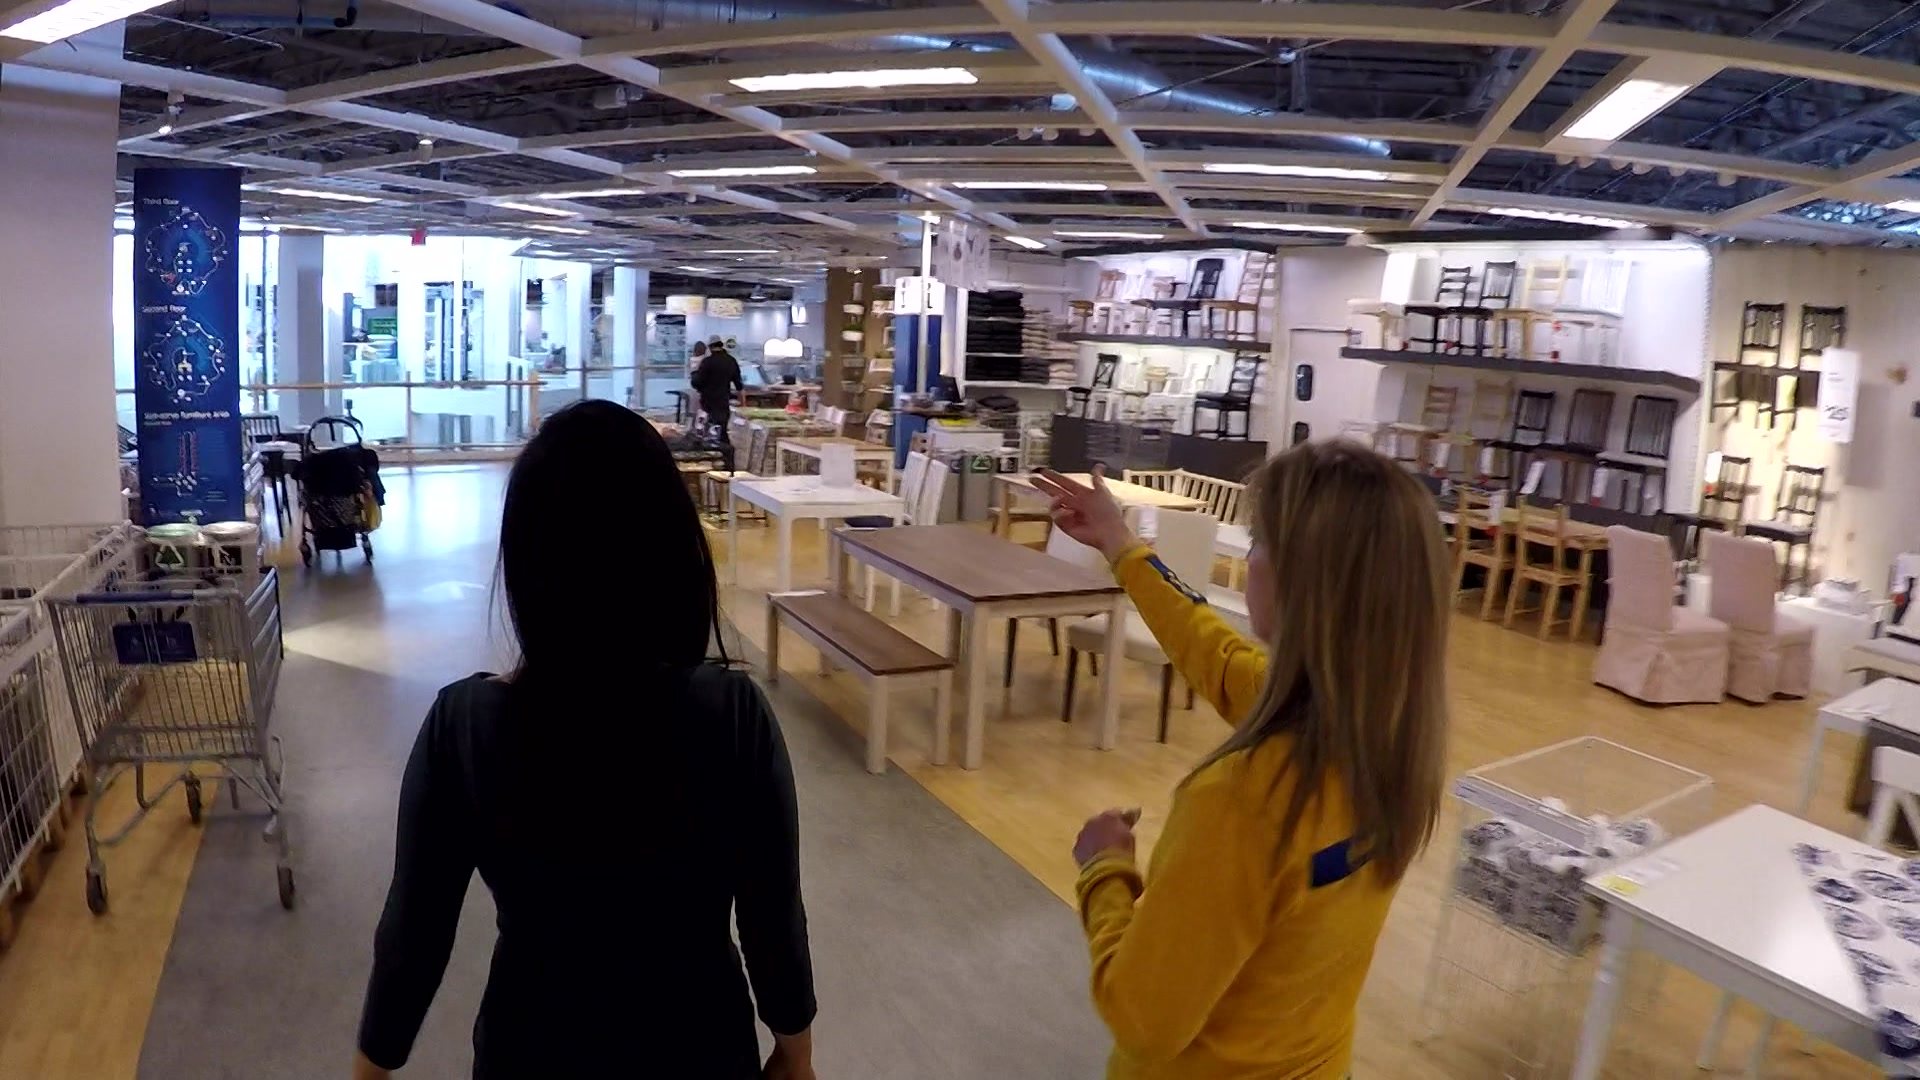 Ikea Near Chicago Special Report: Take A Tour Inside A Suburban Chicago Ikea